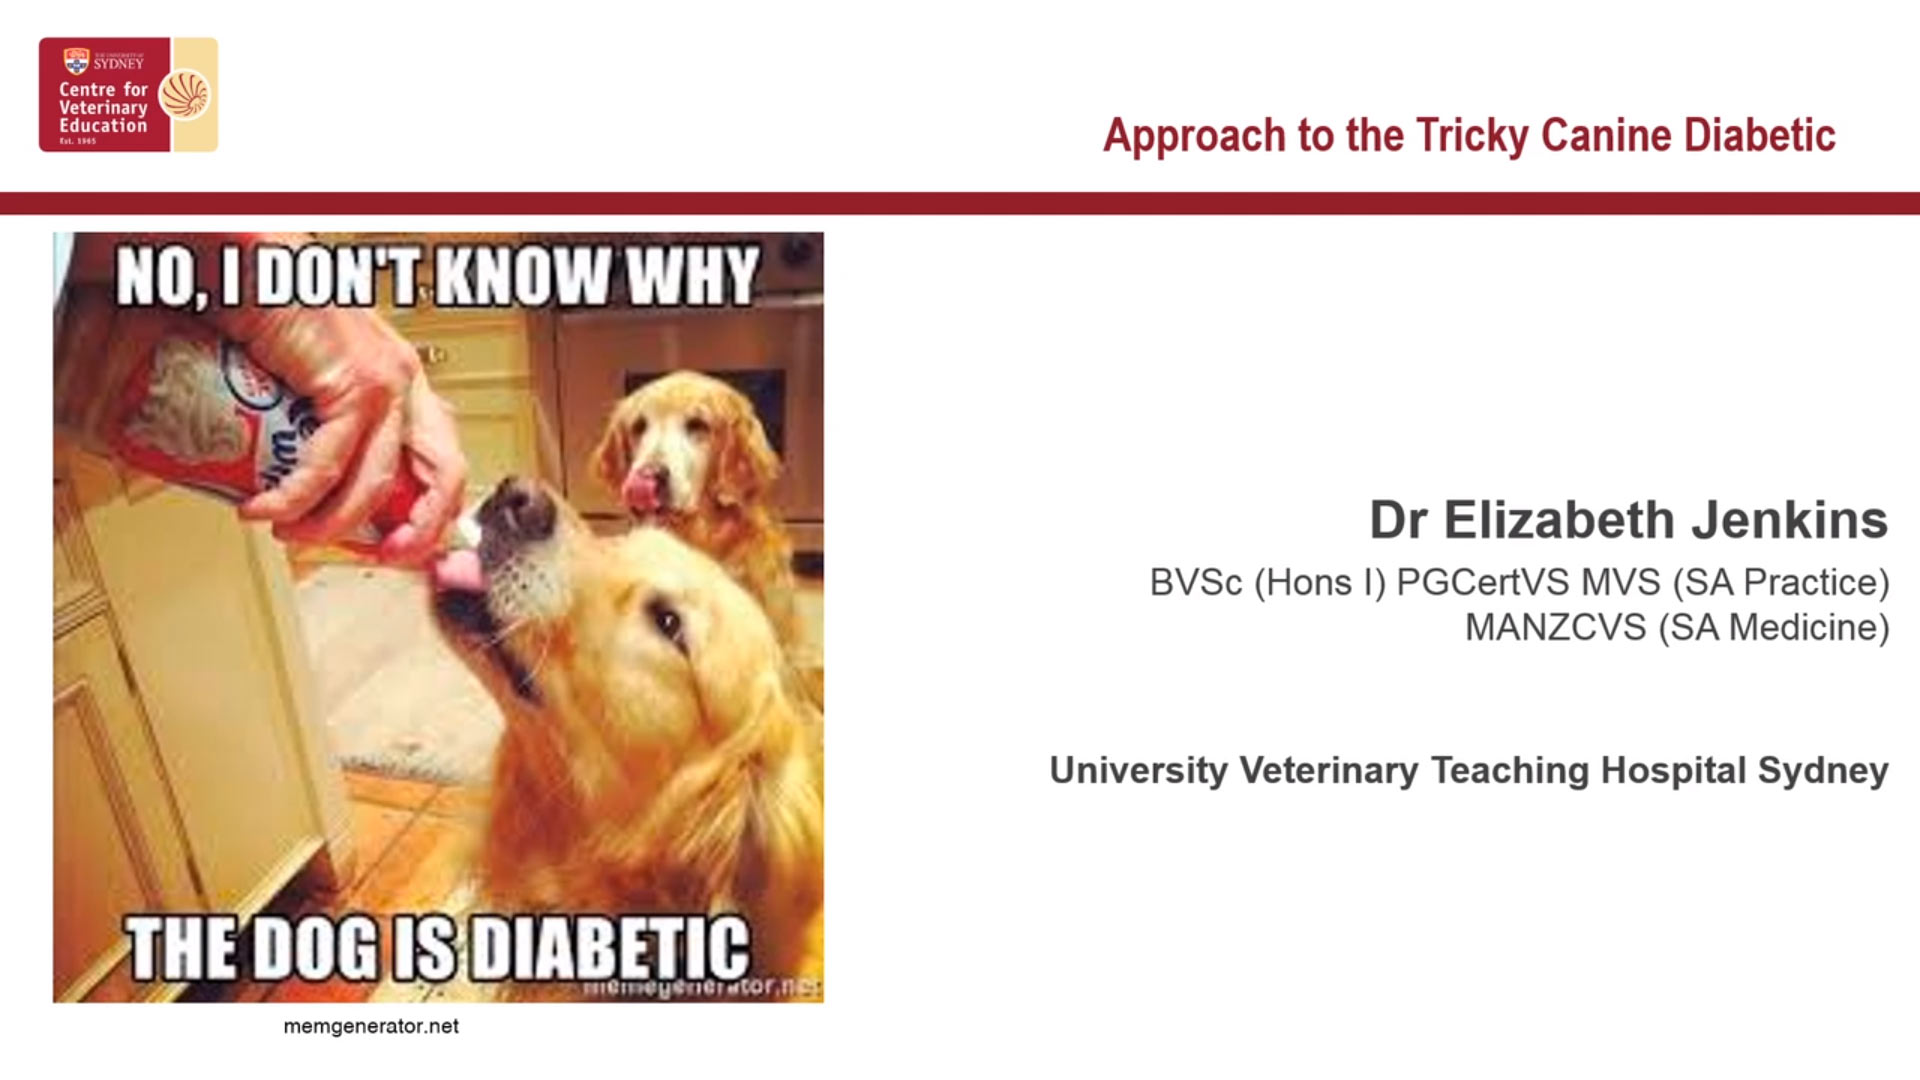 Approach to the tricky canine diabetic